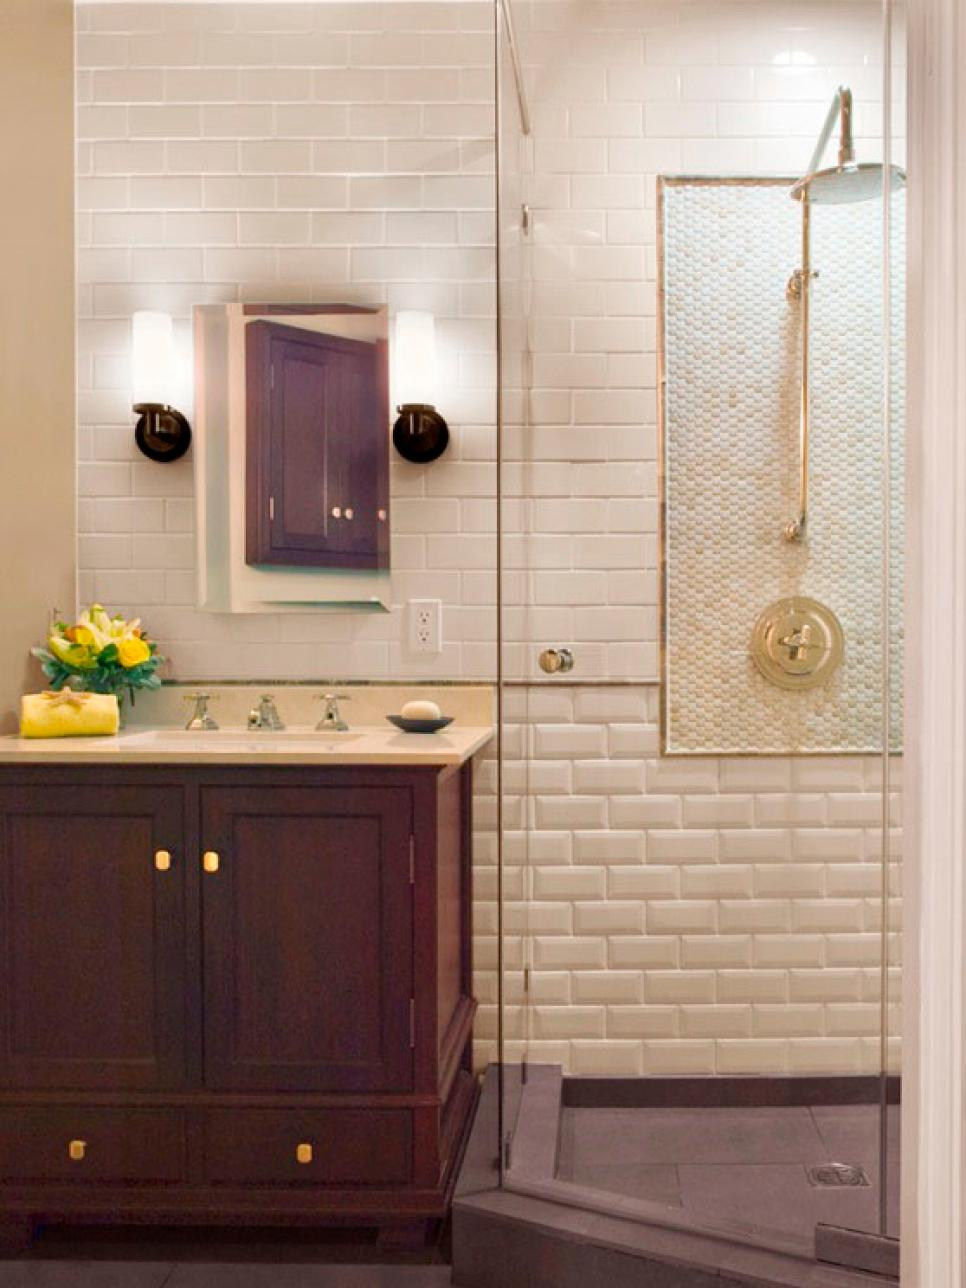 Bathroom Shower Designs HGTV - Images of bathroom showers for bathroom decor ideas